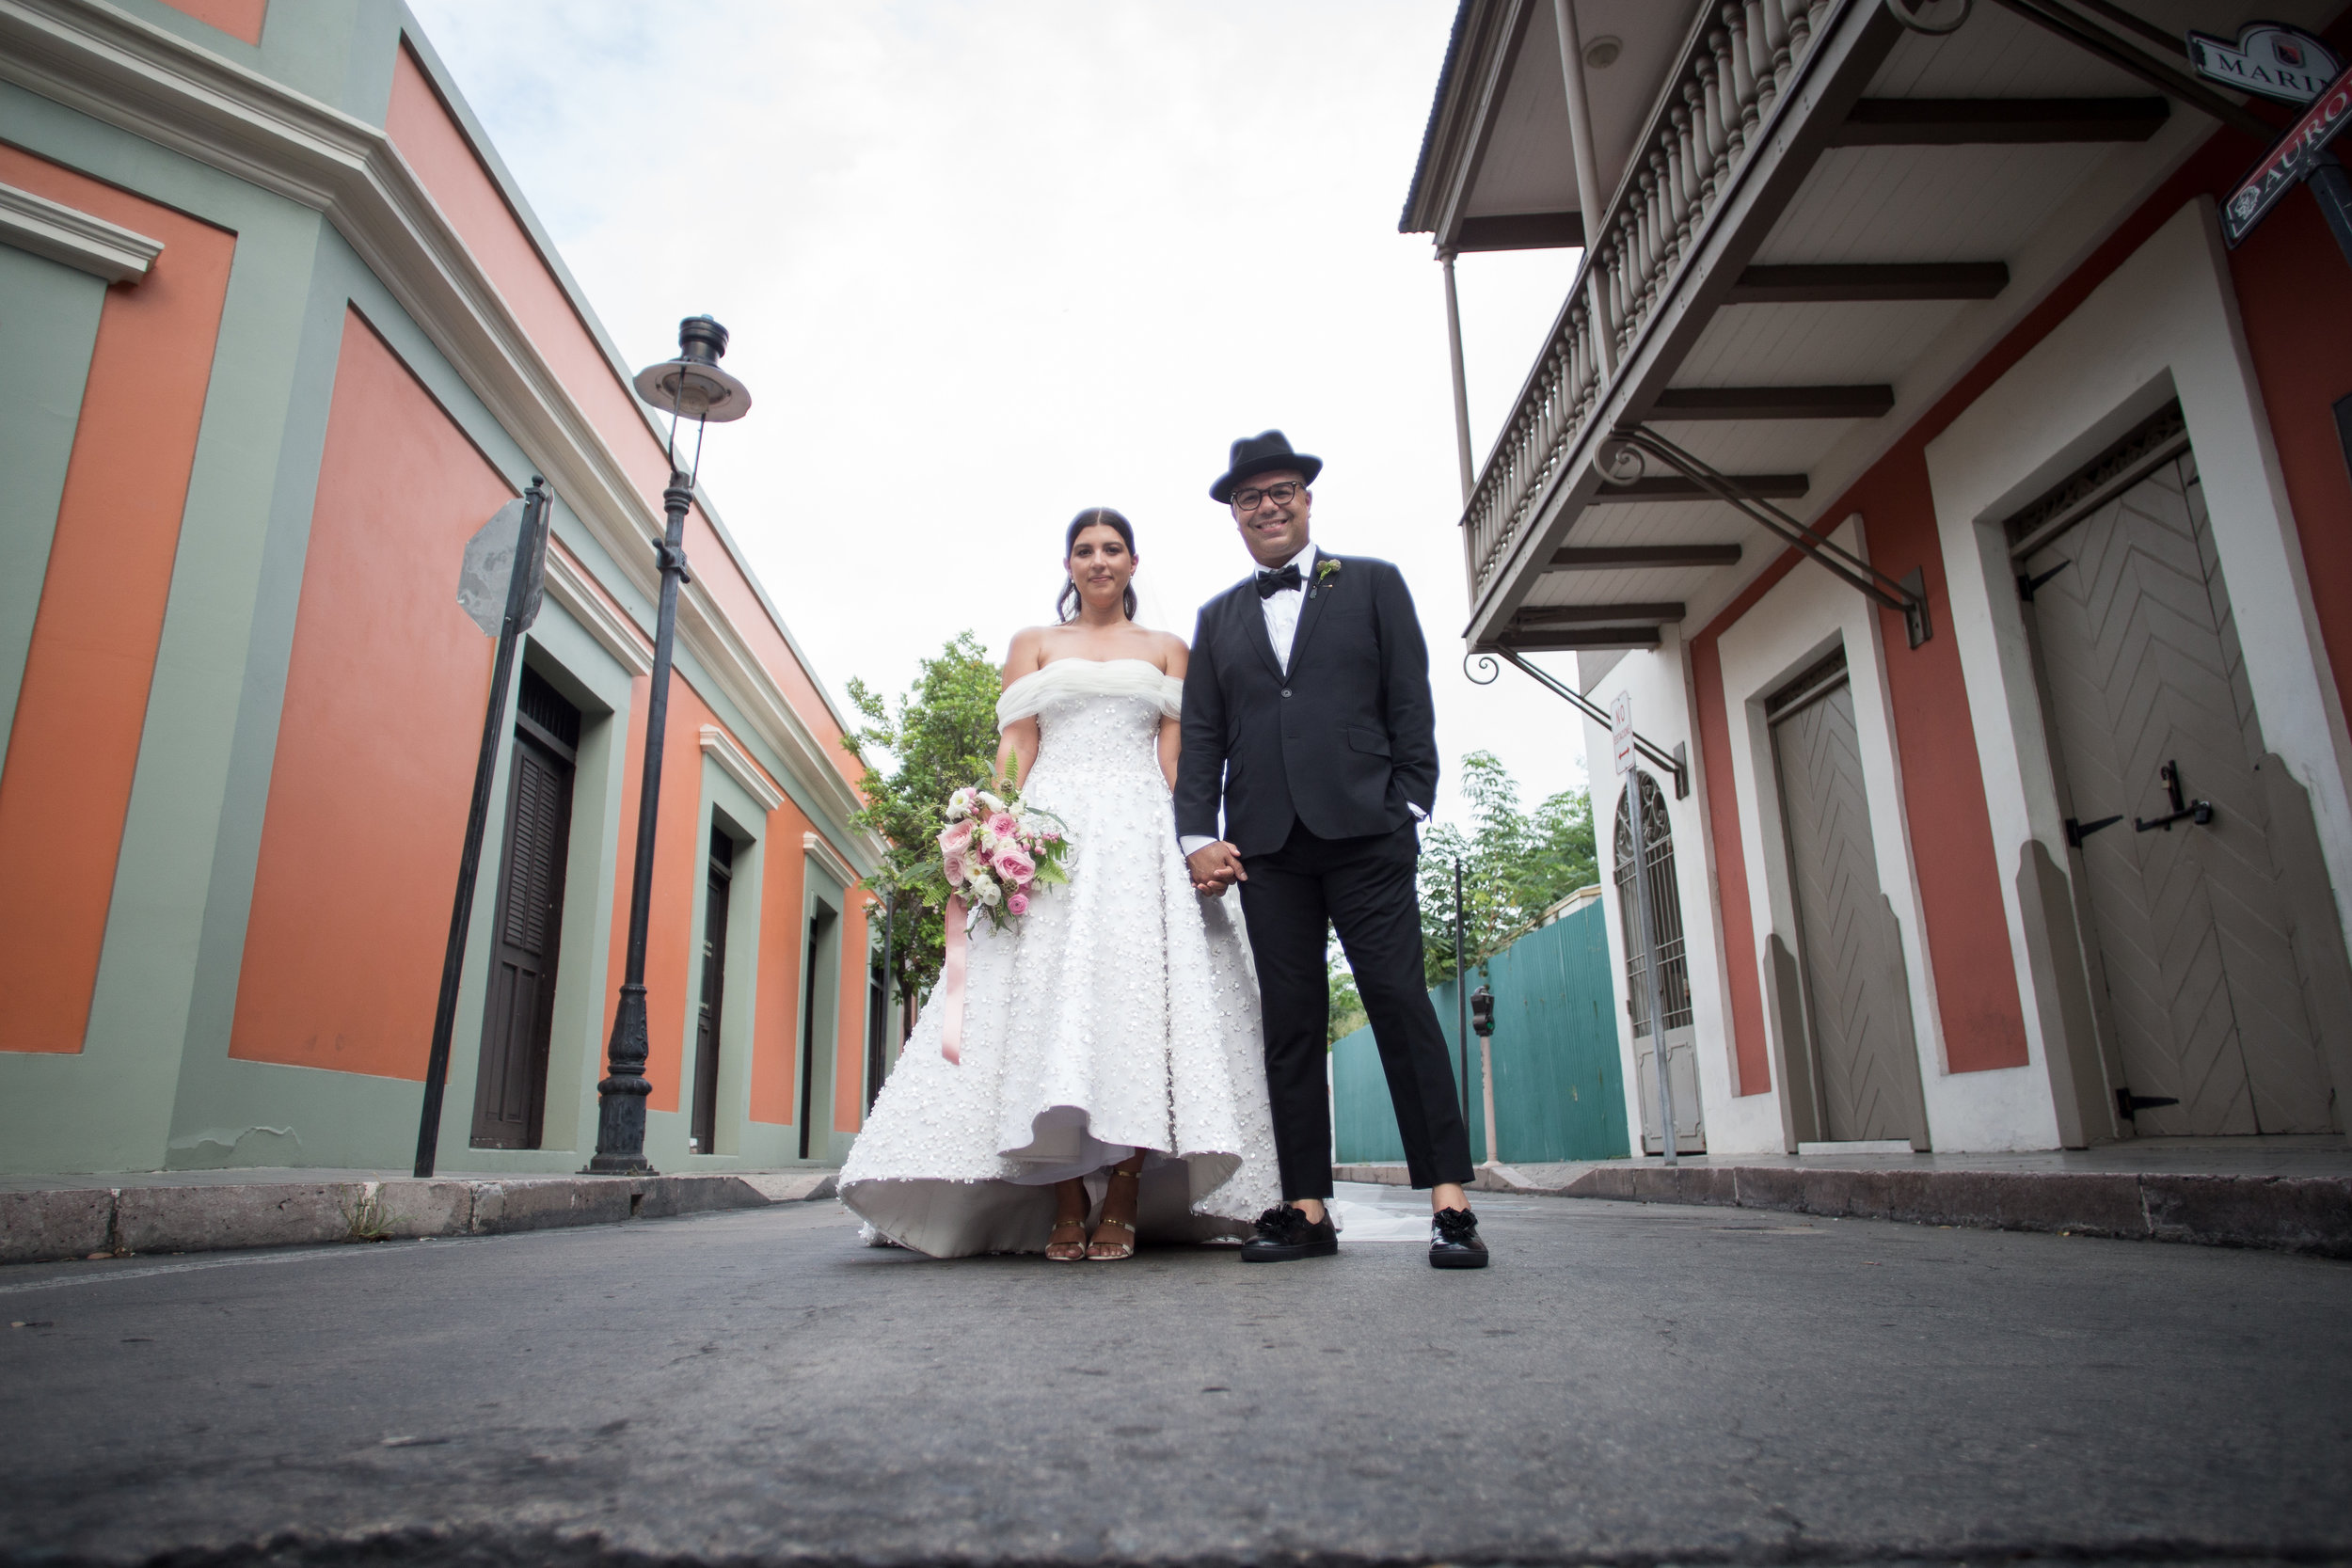 An Antiguo Casino de Ponce, Puerto Rico Wedding